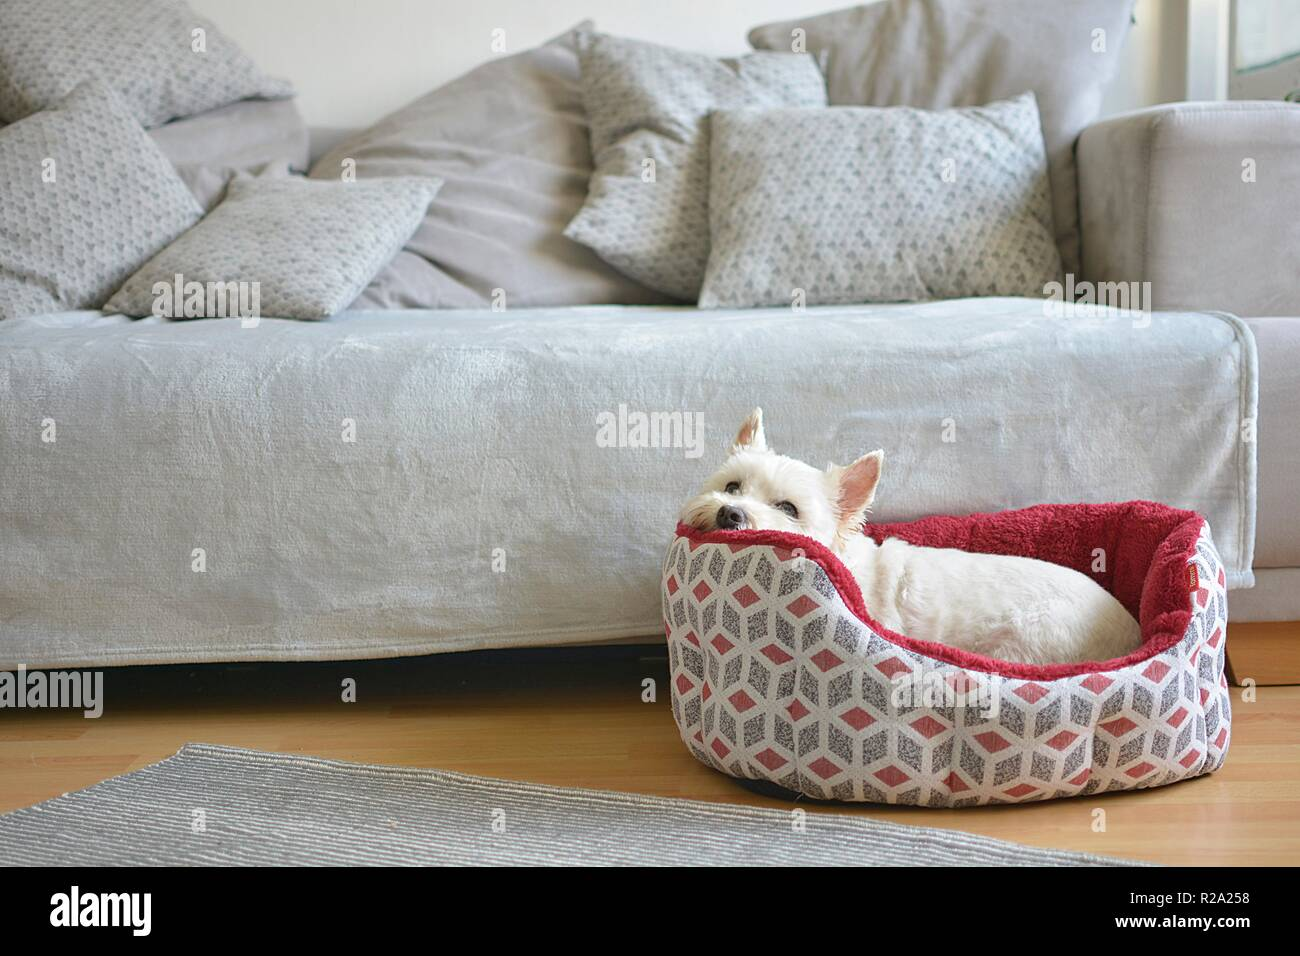 the dog lies in his dog bed - Stock Image